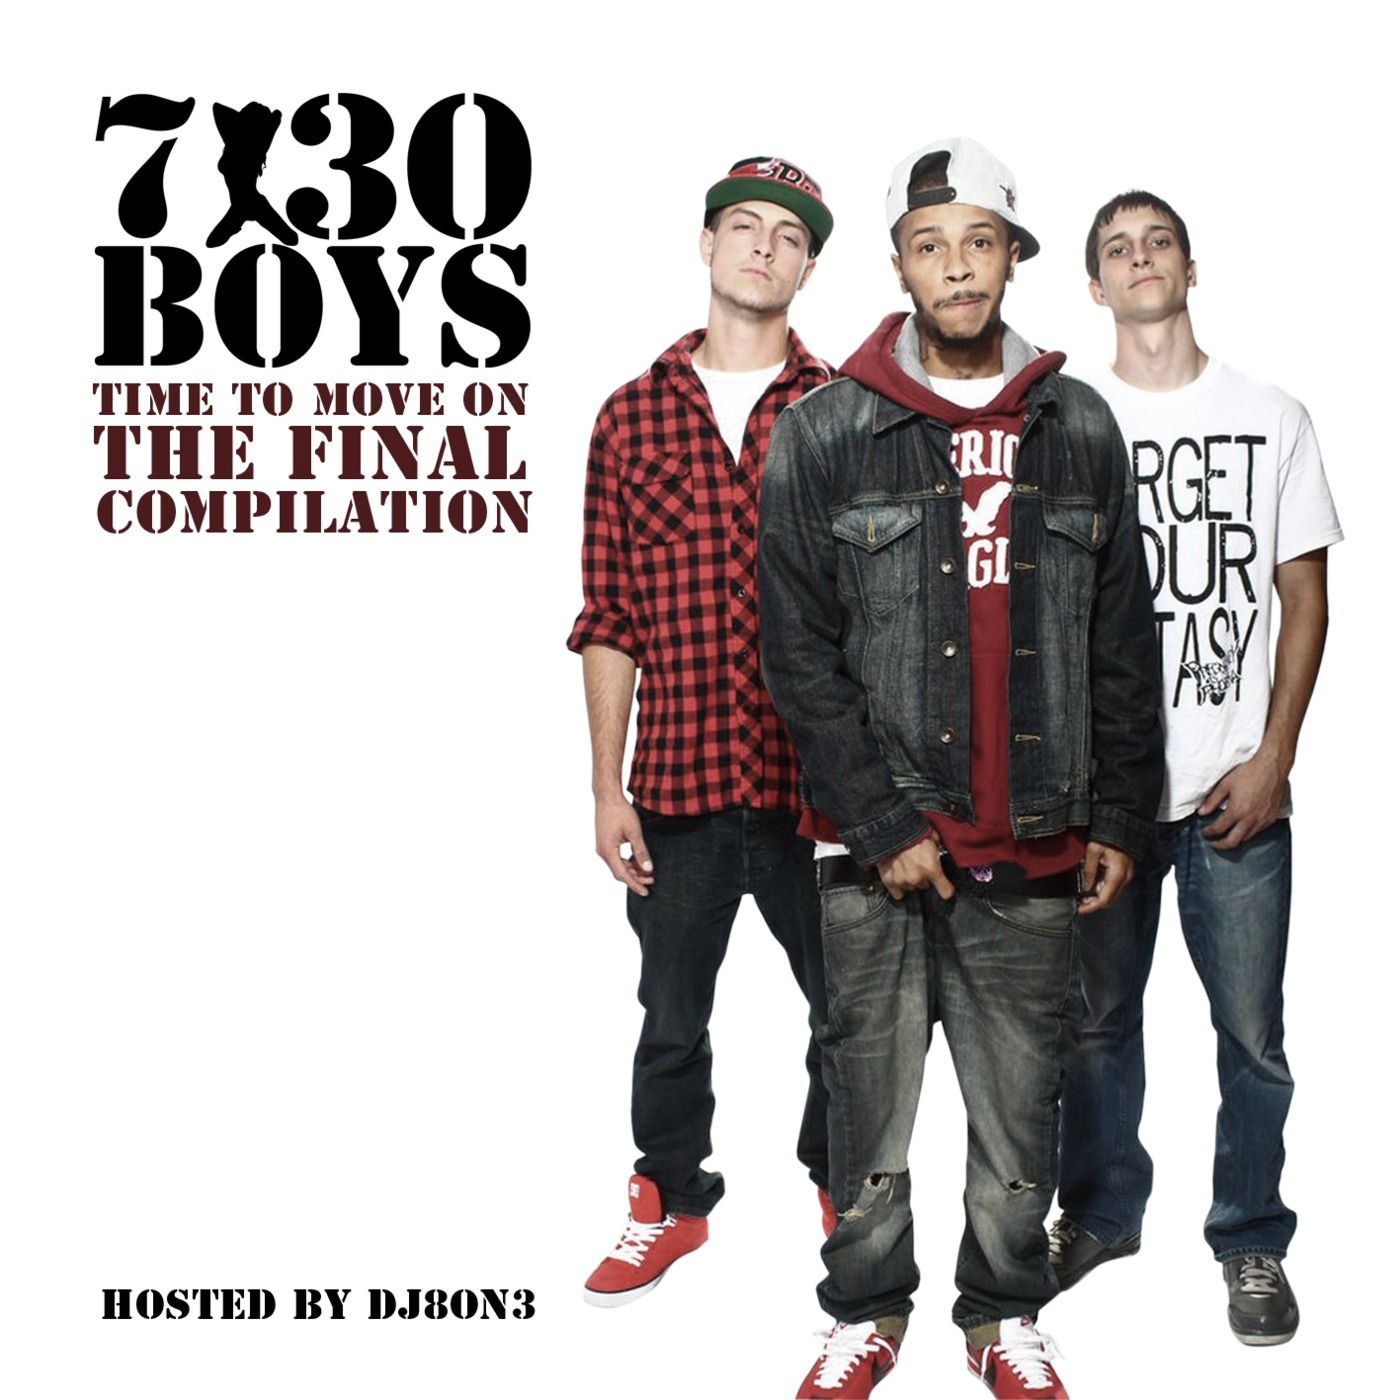 730 Boys Official Podcast